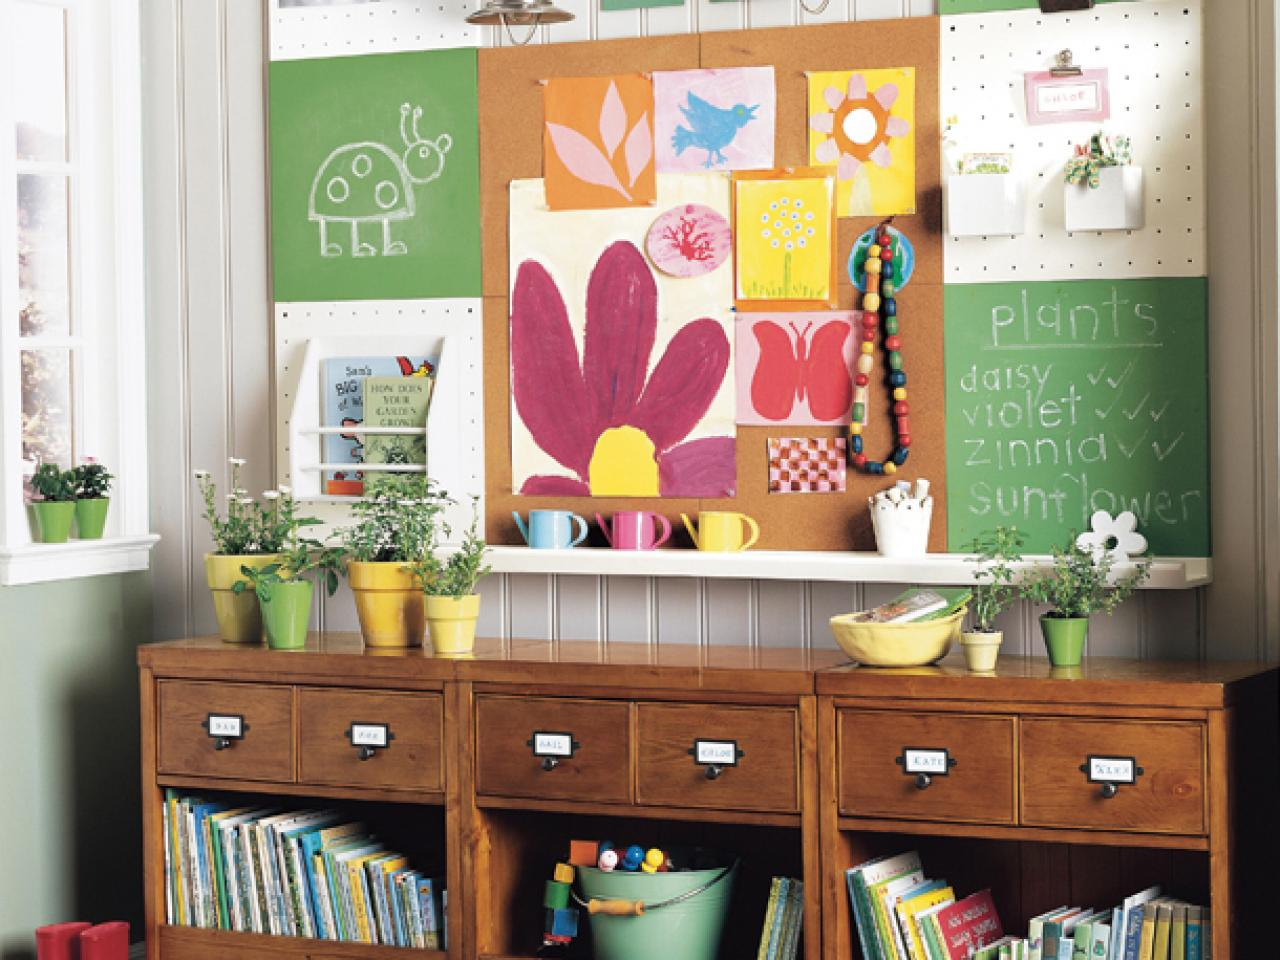 Awesome 10 Decorating Ideas for Kidsu0027 Rooms kids room decorating ideas